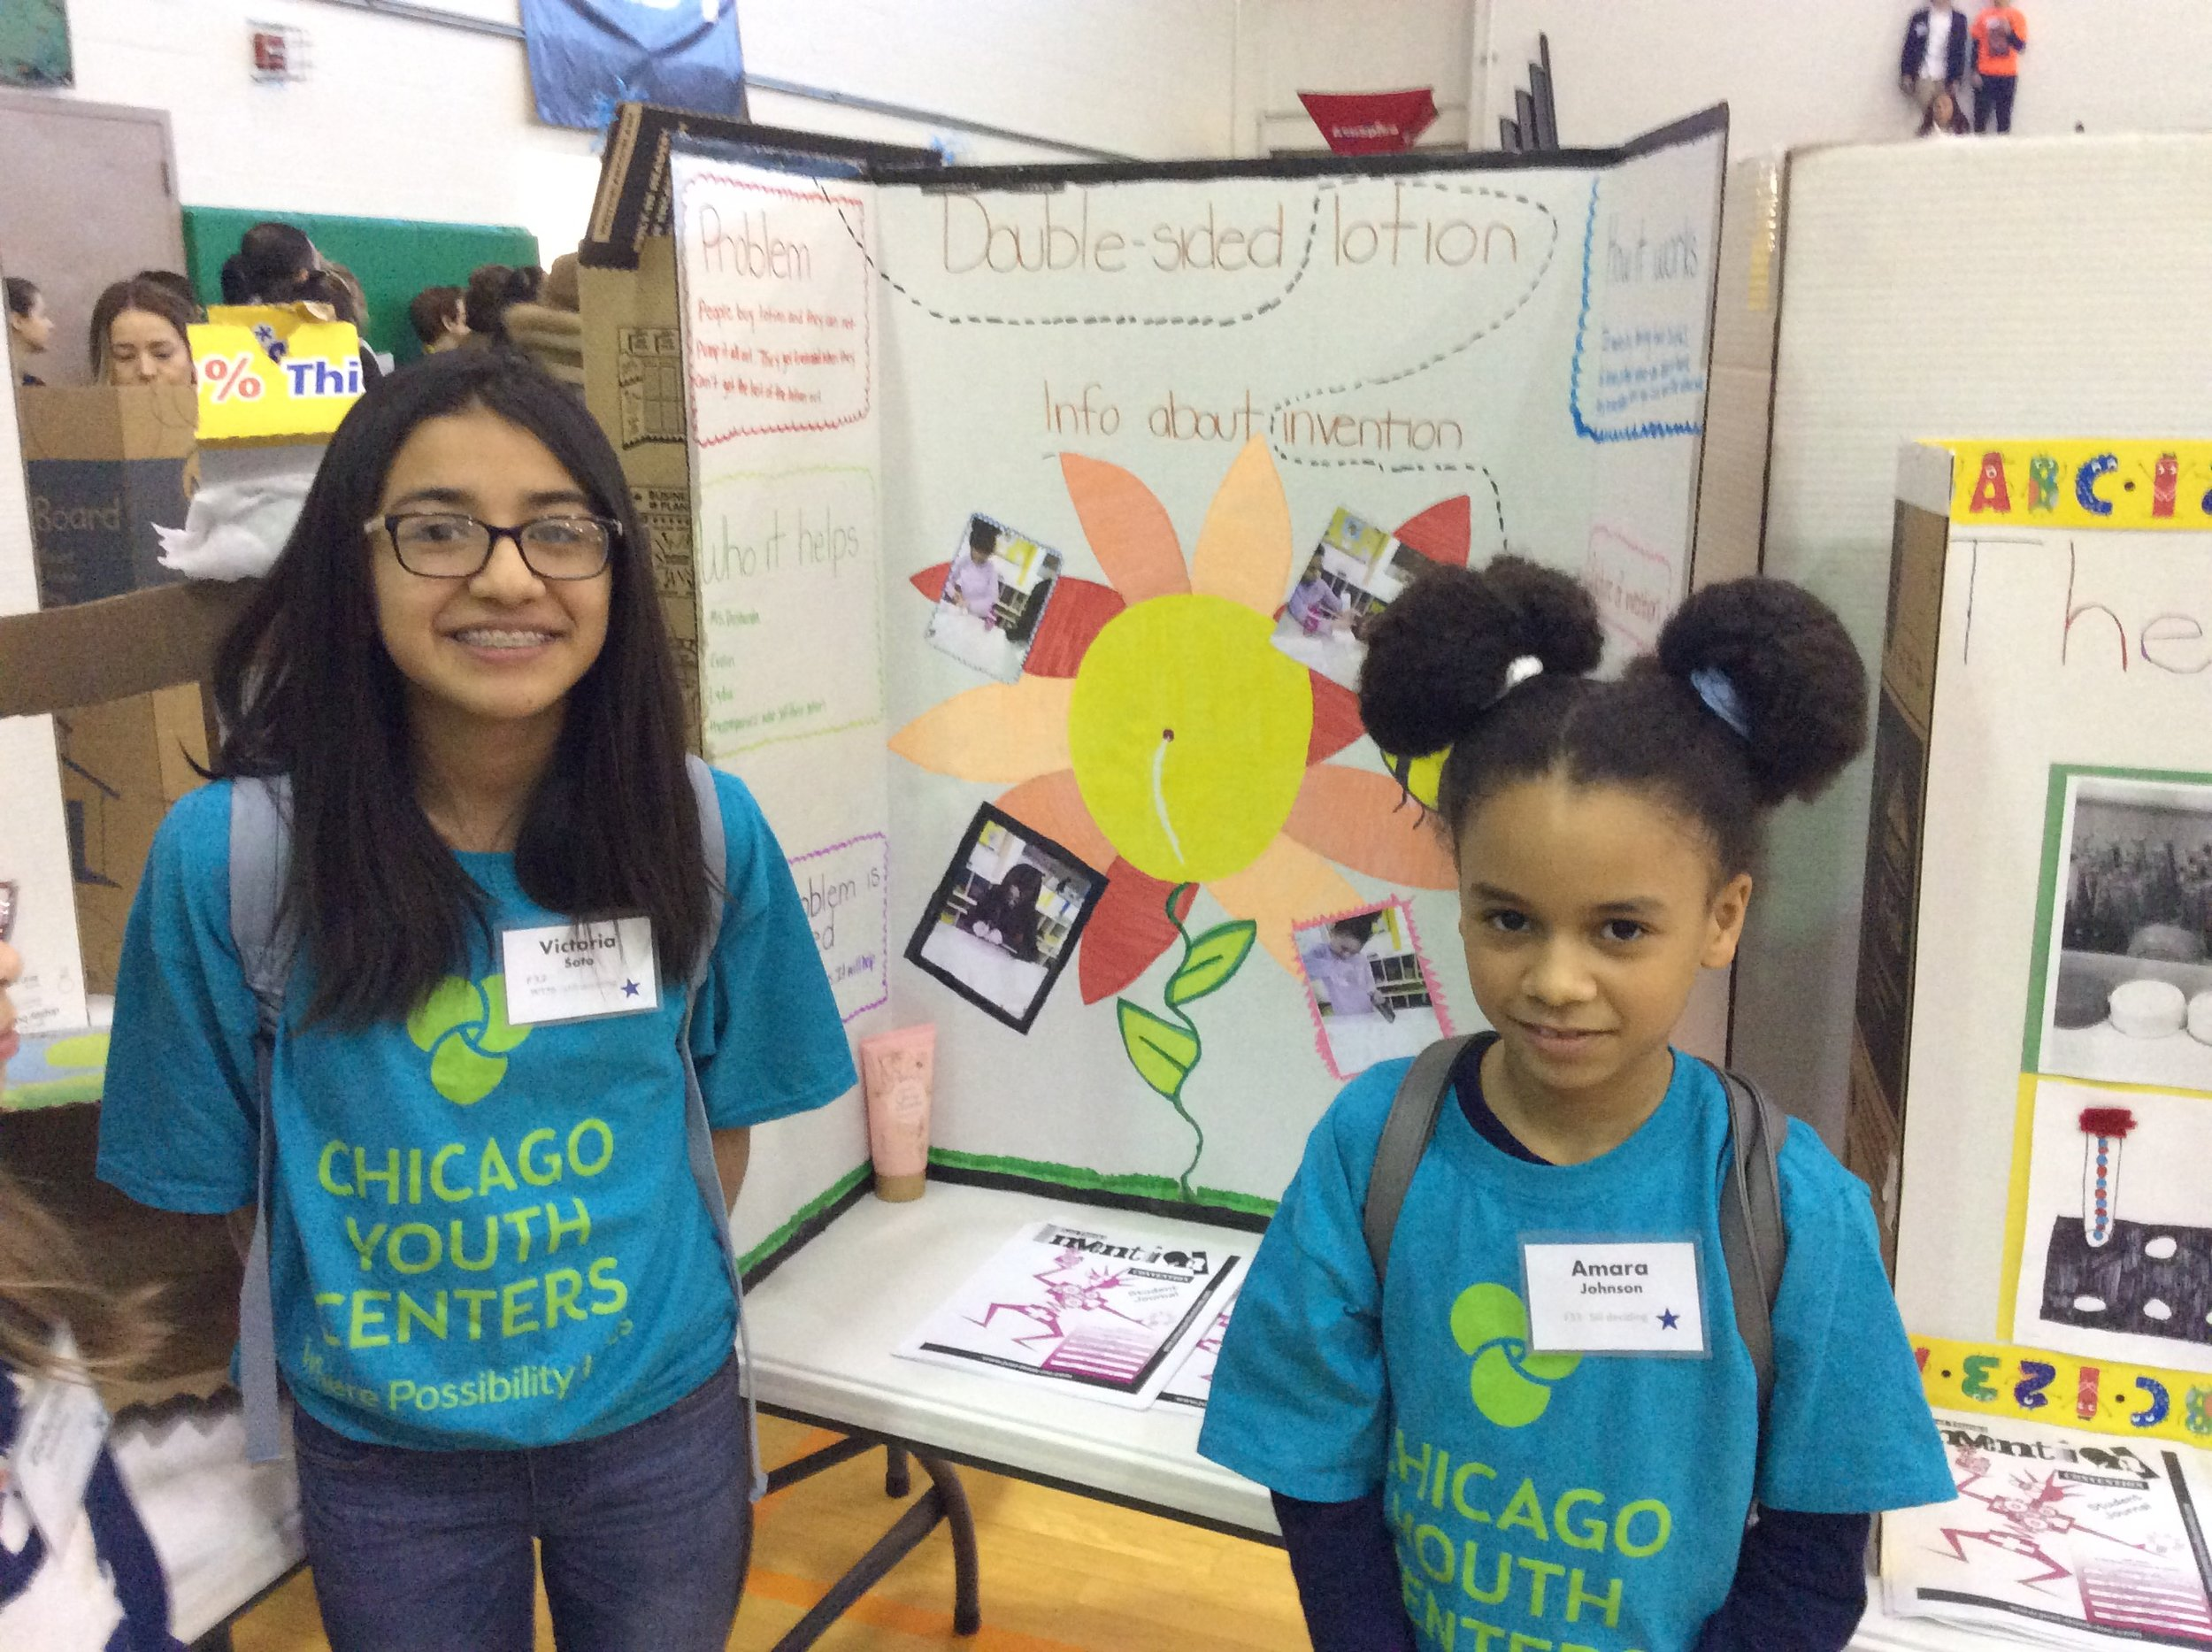 Victoria and Amara, CYC-Fellowship students, pose in front of their presentation at the Chicago Student Invention Convention.